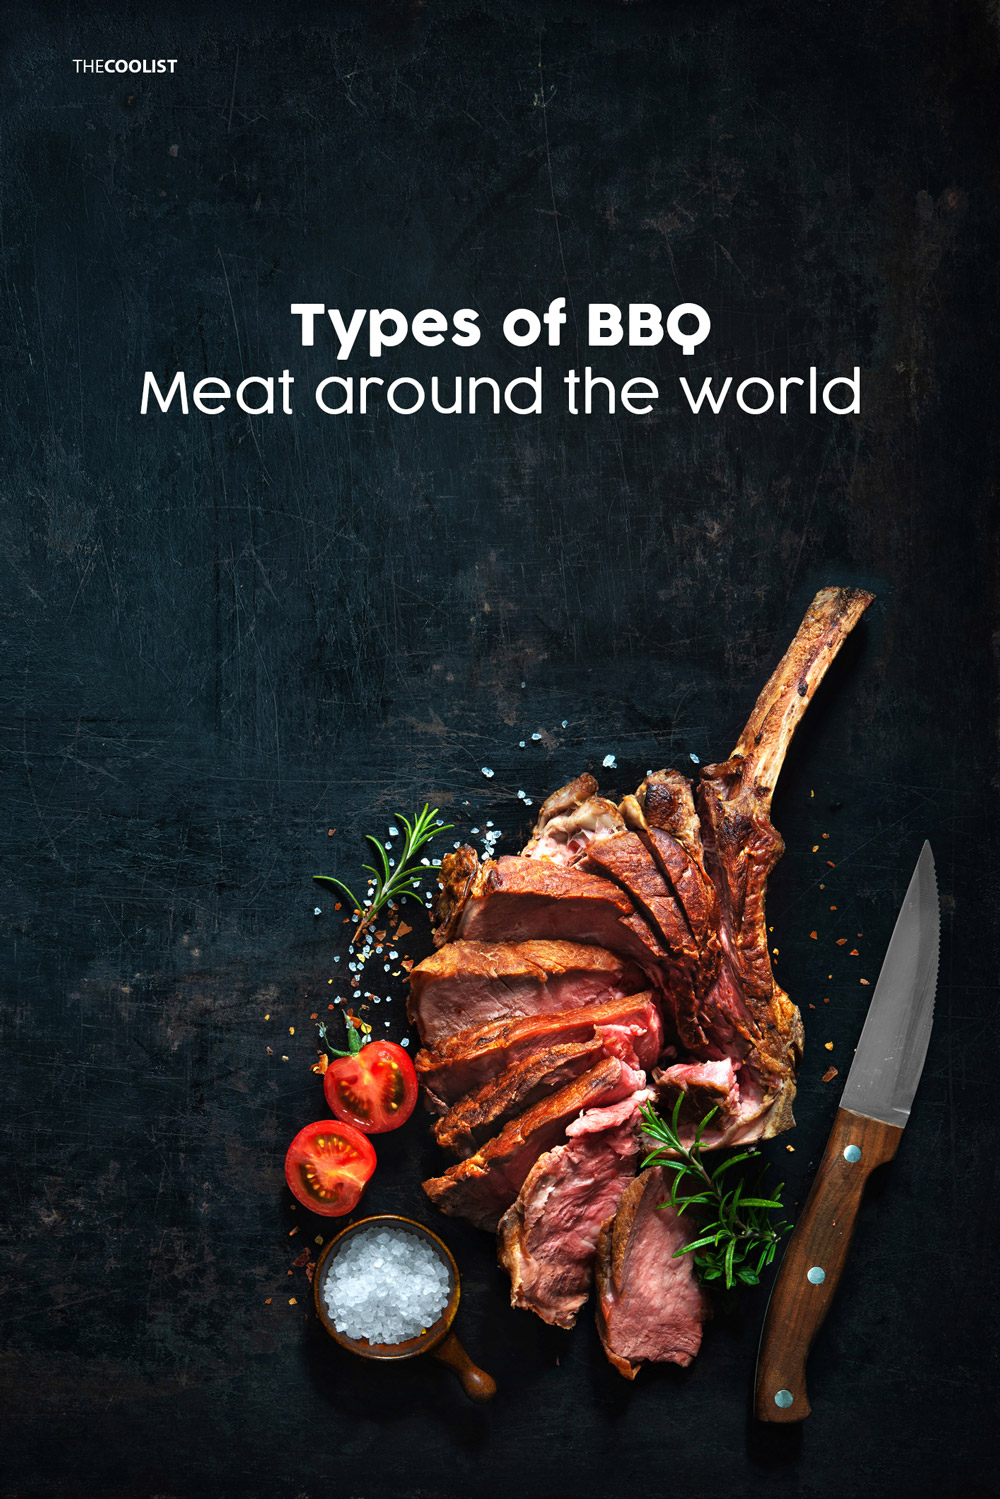 Types of BBQ meat Meat Your Maker: All 21 Types and Styles of BBQ Explained